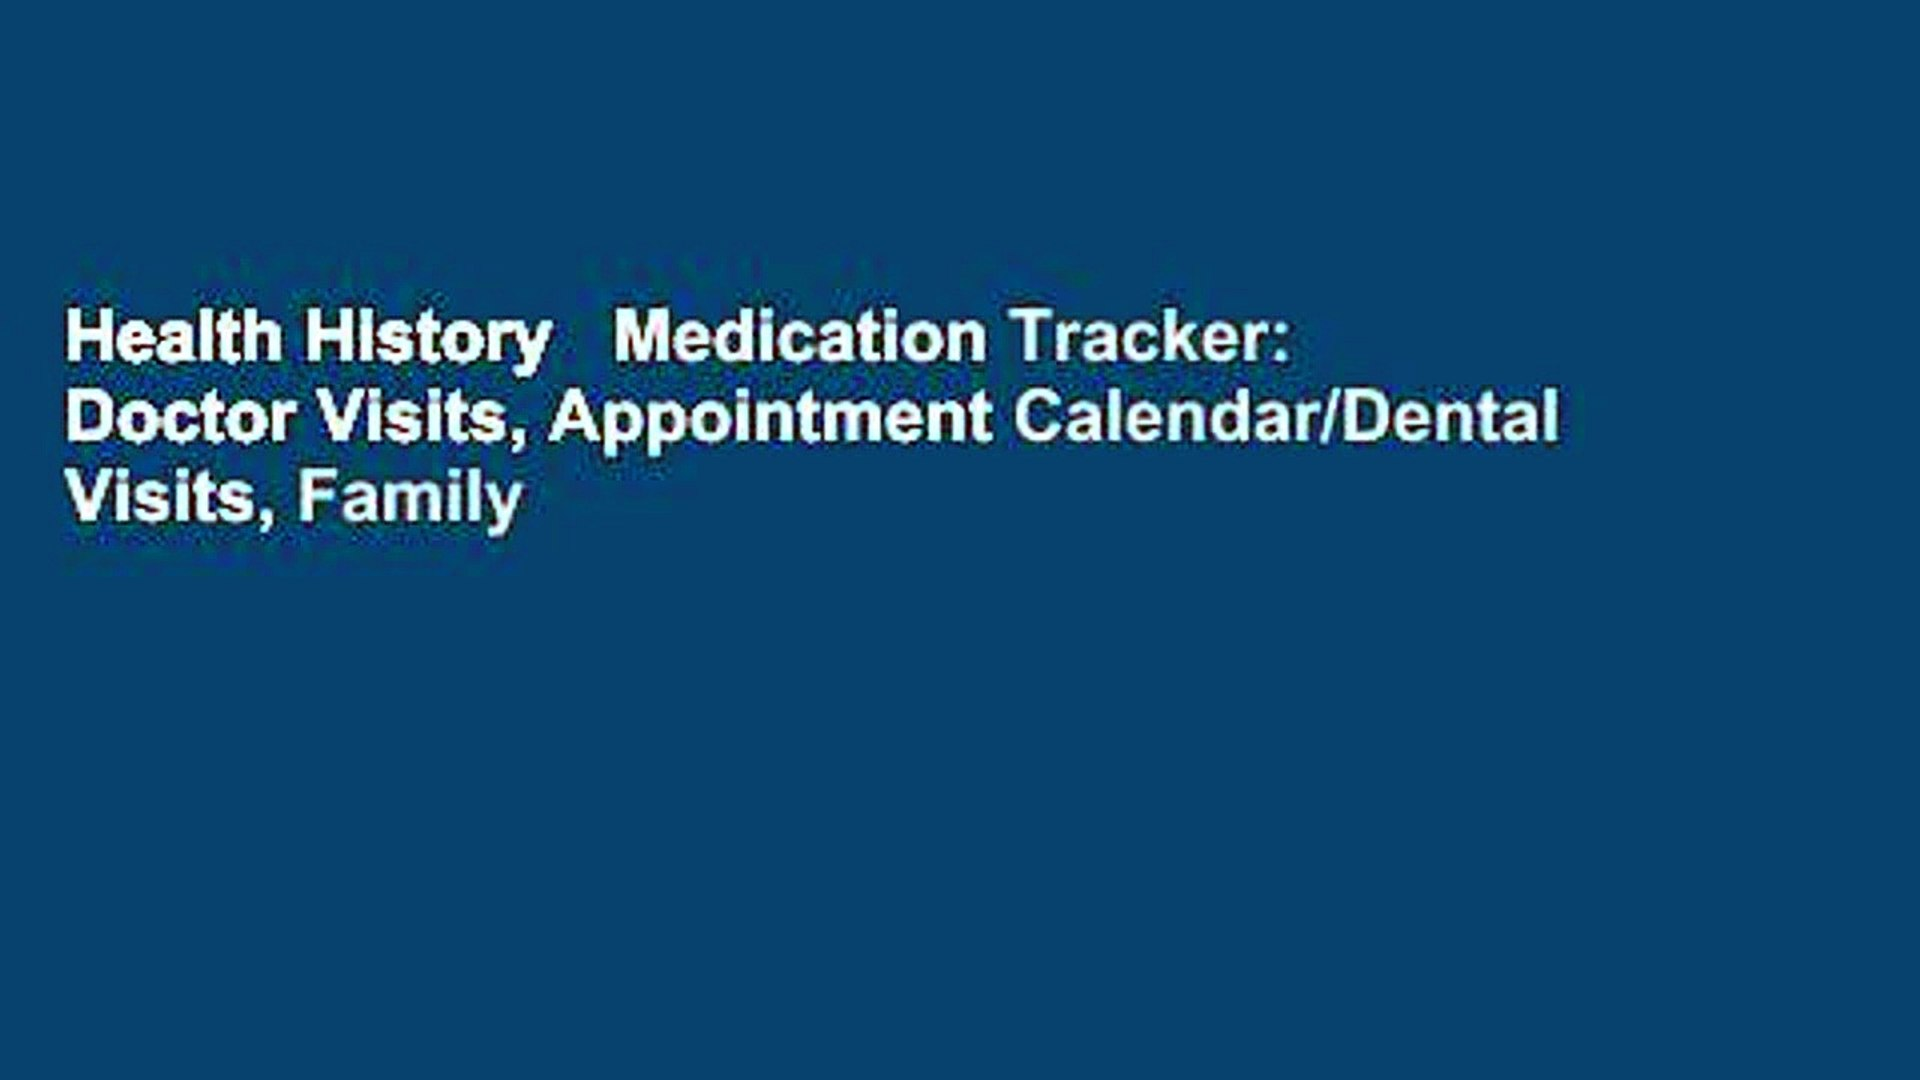 Health History   Medication Tracker: Doctor Visits, Appointment Calendar/Dental Visits, Family